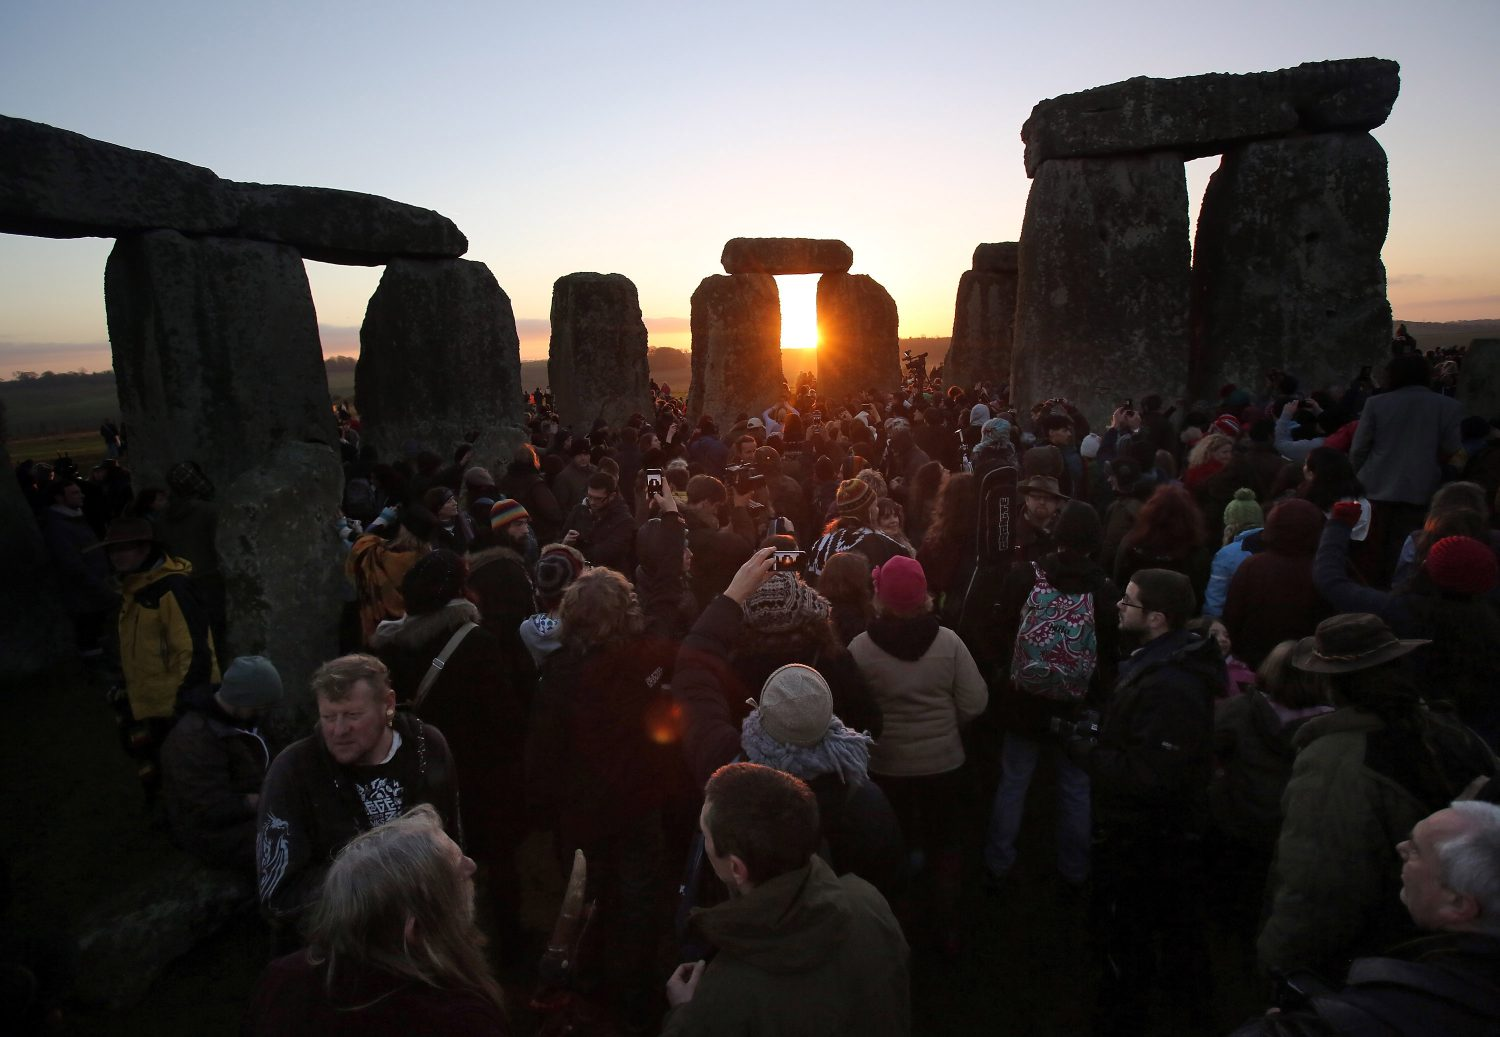 Matt Cardy/Getty Images.AMESBURY, ENGLAND - DECEMBER 21: People gather to watch the sunrise as druids, pagans and revellers celebrate the winter solstice at Stonehenge on December 21, 2012 in Wiltshire, England. Predictions that the world will end today as it marks the end of a 5,125-year-long cycle in the ancient Maya calendar, encouraged a larger than normal crowd to gather at the famous historic stone circle to celebrate the sunrise closest to the Winter Solstice, the shortest day of the year.